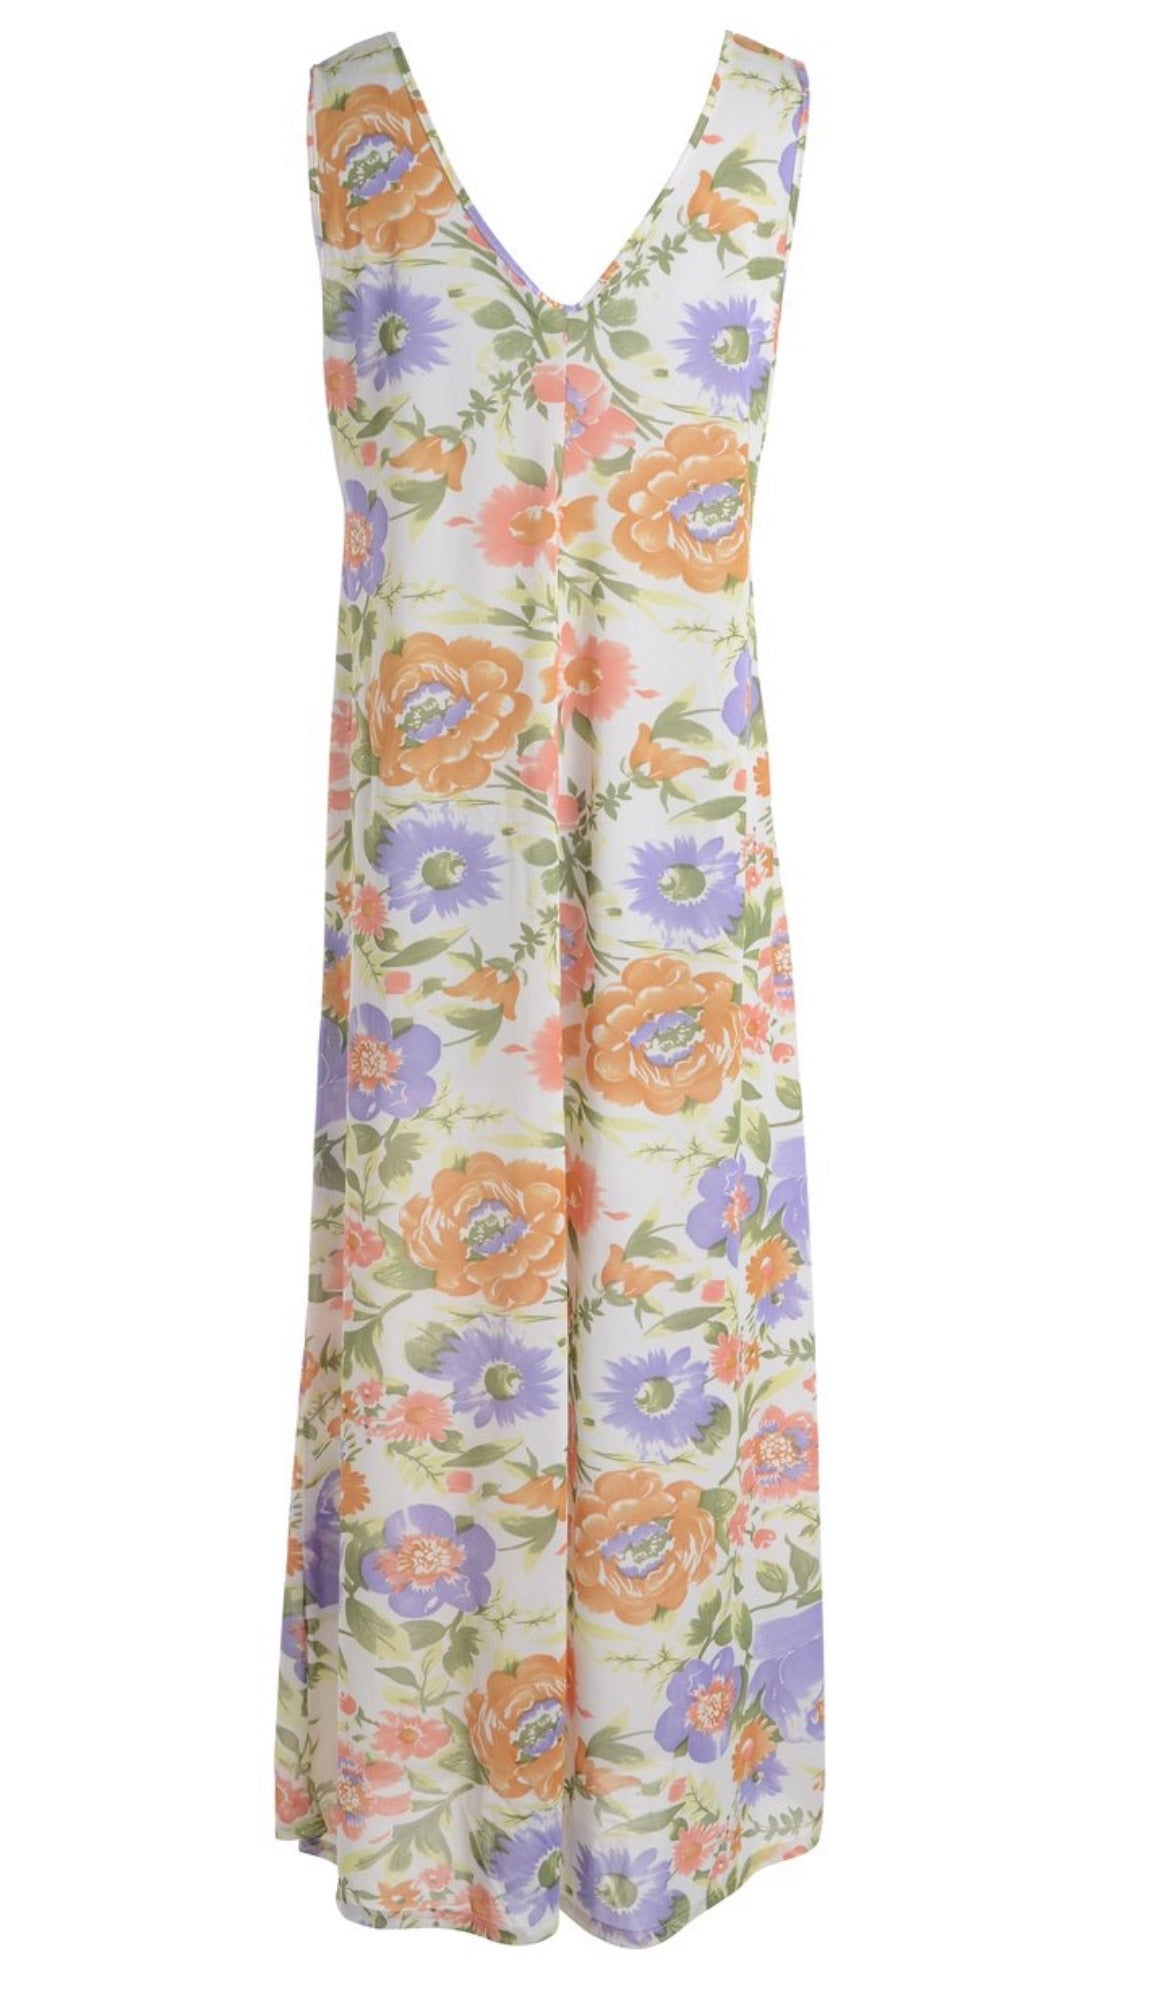 The Mia Maxi flower dress